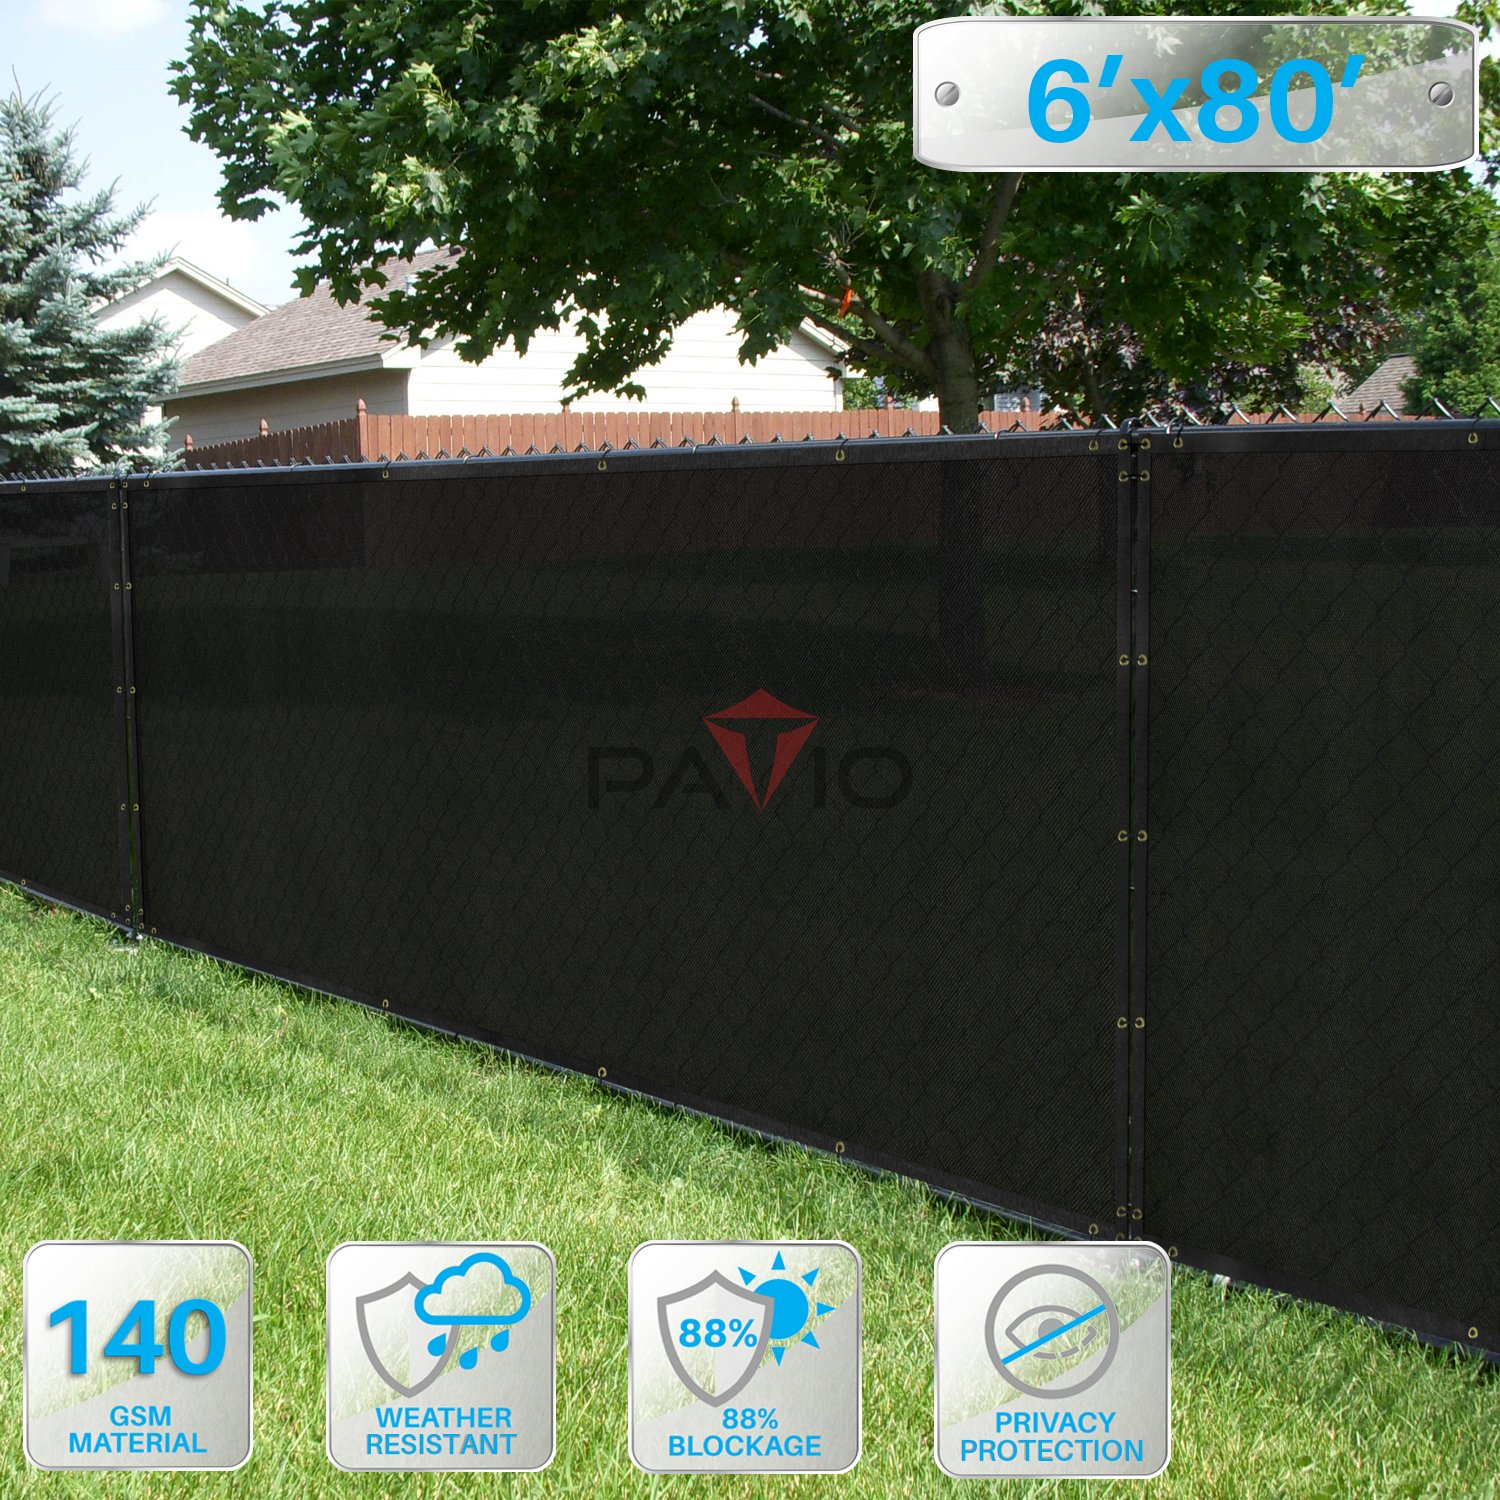 Patio Paradise 6' x 80' Black Fence Privacy Screen, Commercial Outdoor Backyard Shade Windscreen Mesh Fabric with brass Gromment 85% Blockage- 3 Years Warranty (Customized Sizes Available)